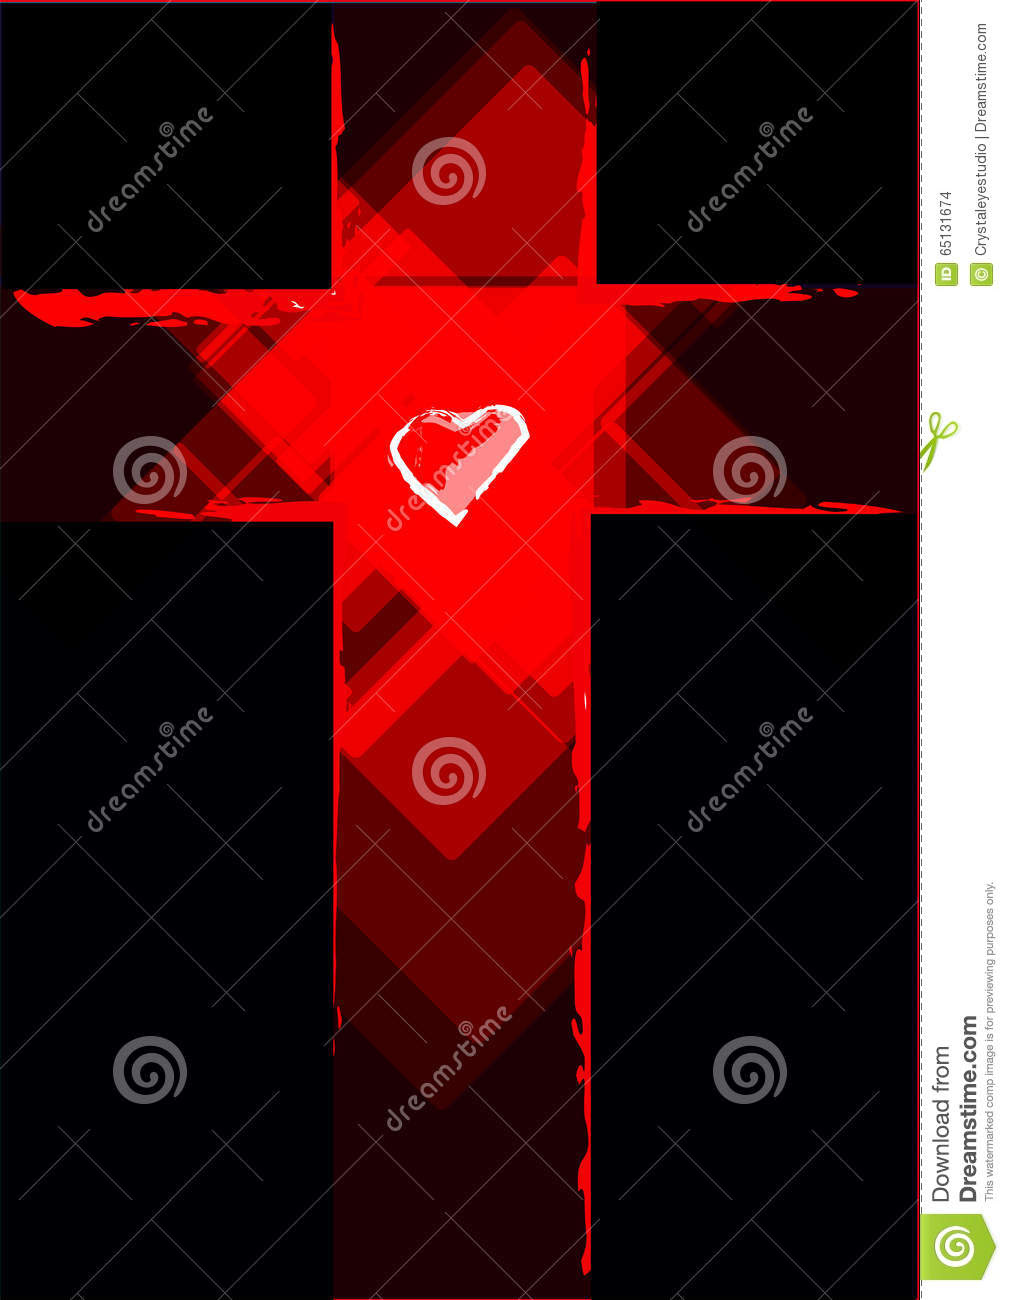 Cross Contemporary Abstract With A Heart In The Middle. Editable ...